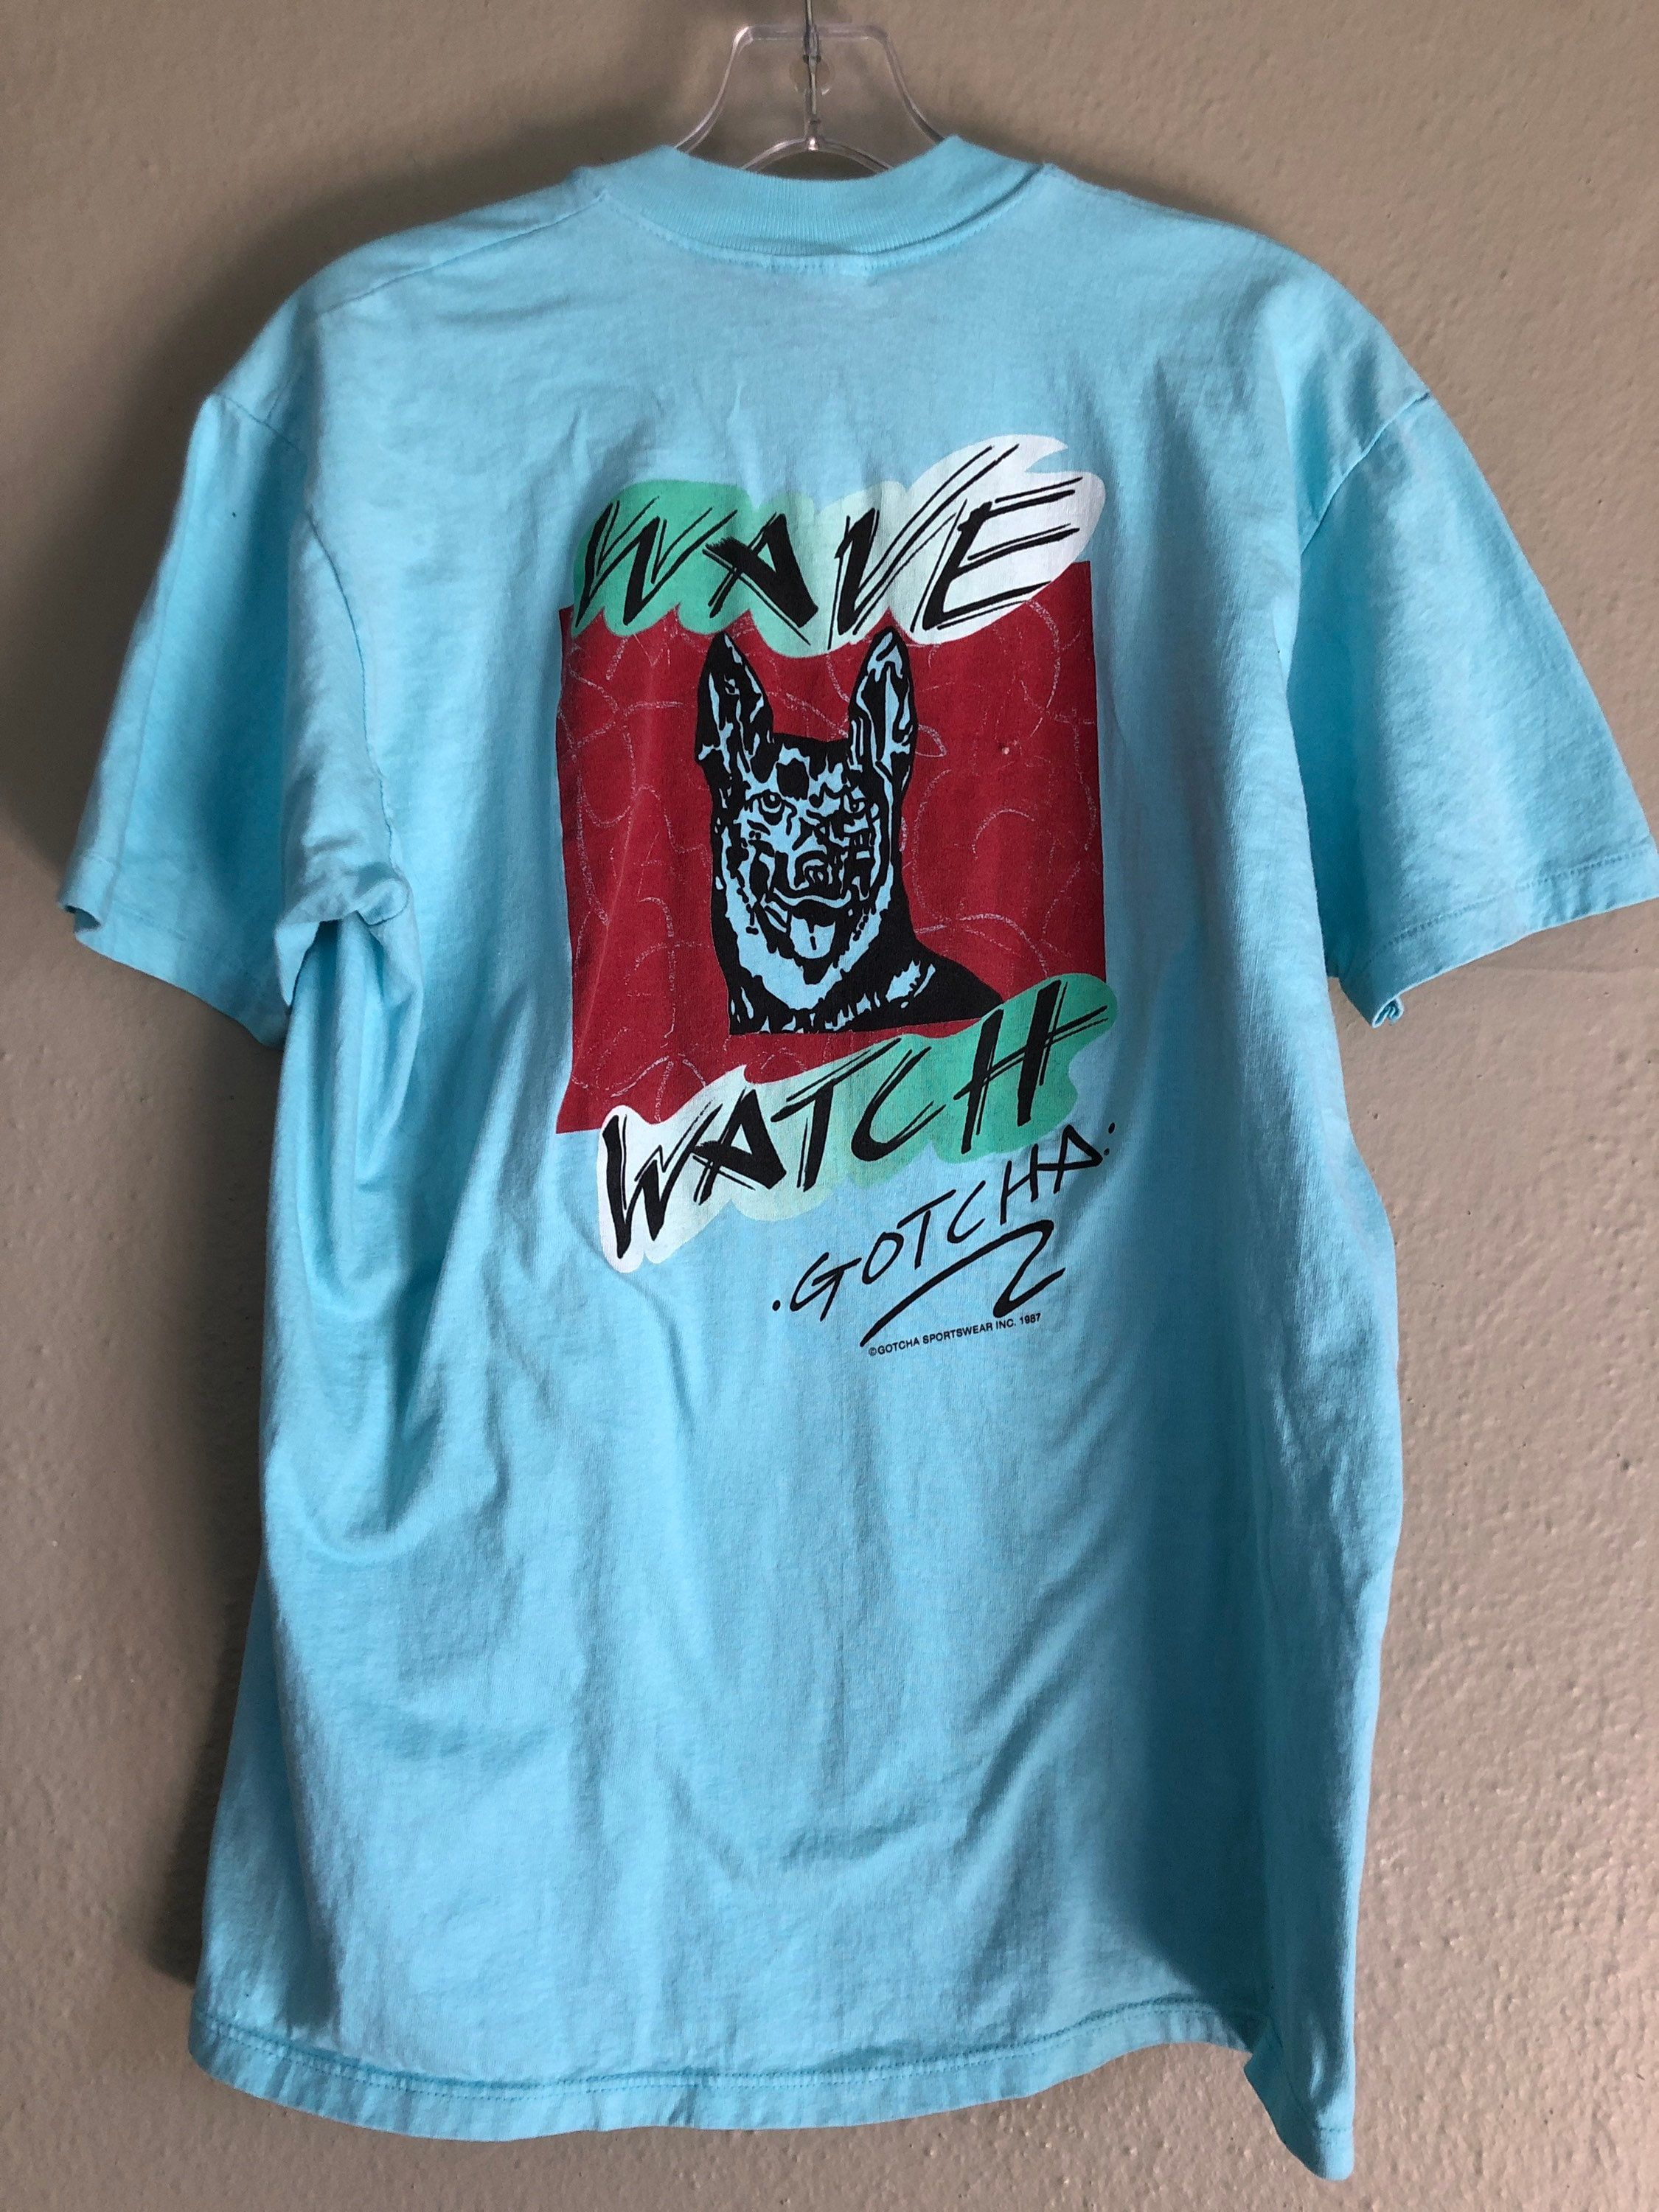 Rare 80s Gotcha surf tee. Cool aqua blue. Small graphic on front and large on back. Single stitch. ©1987. There is some very slight fading under the collar. See pics. Armpit to armpit: 21 Top to bottom: 28 Tag size: L Modern size: M Brand: Gotcha Fabric: 100% cotton Please note: this item is pre-loved and may show signs of wear. Any major flaws will be listed. Shirts are sized base on modern day measurements not what the vintage tag says. Save the world - buy vintage! We always ship in biodegrad